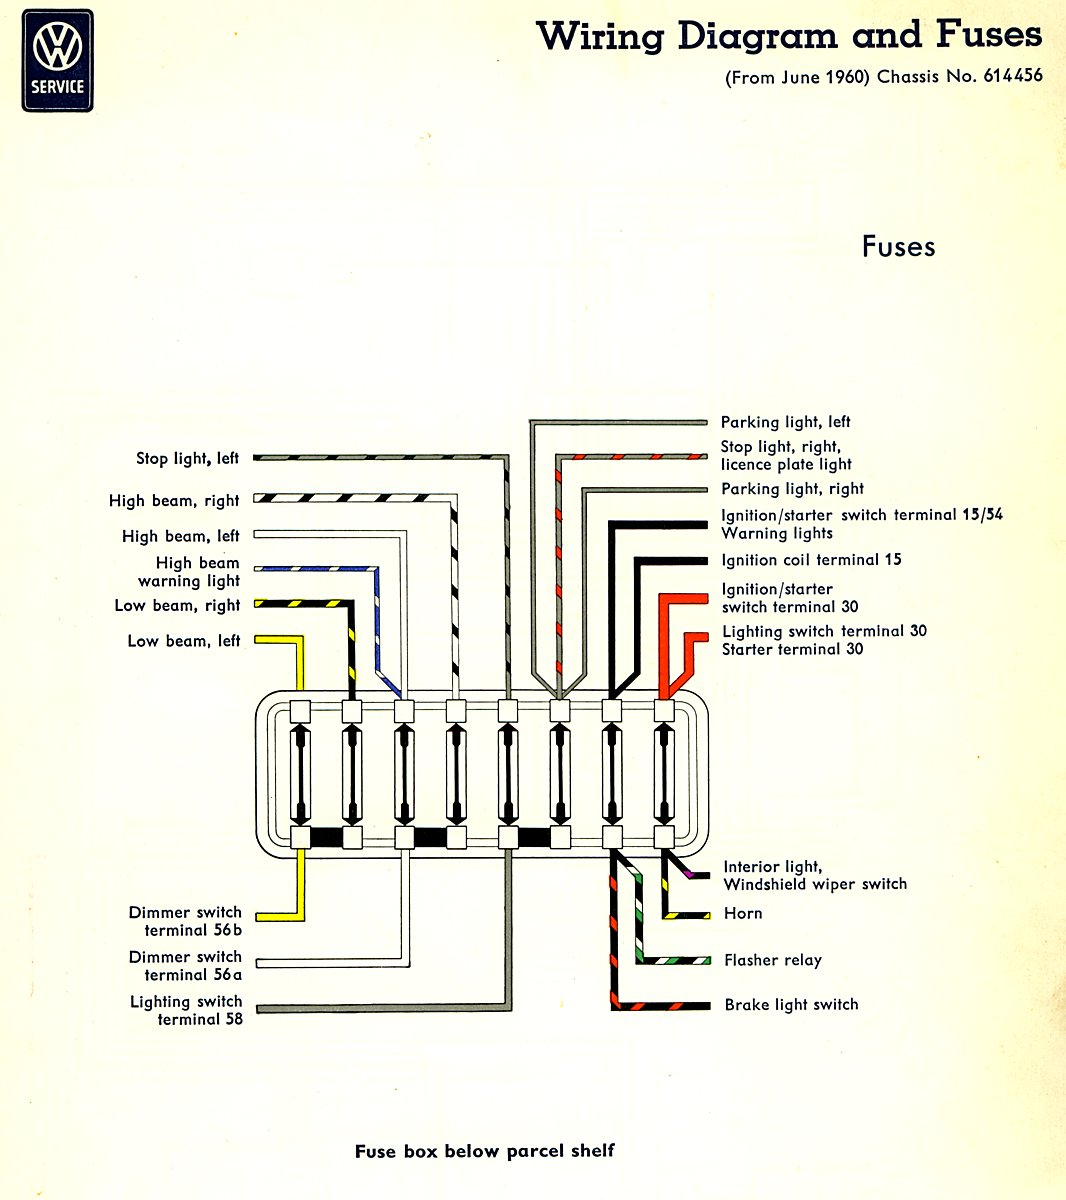 1961 Chevrolet Fuse Block Diagram Start Building A Wiring Box For The 1956 Chevy 210 Thesamba Com Type 2 Diagrams Rh 55 2003 S10